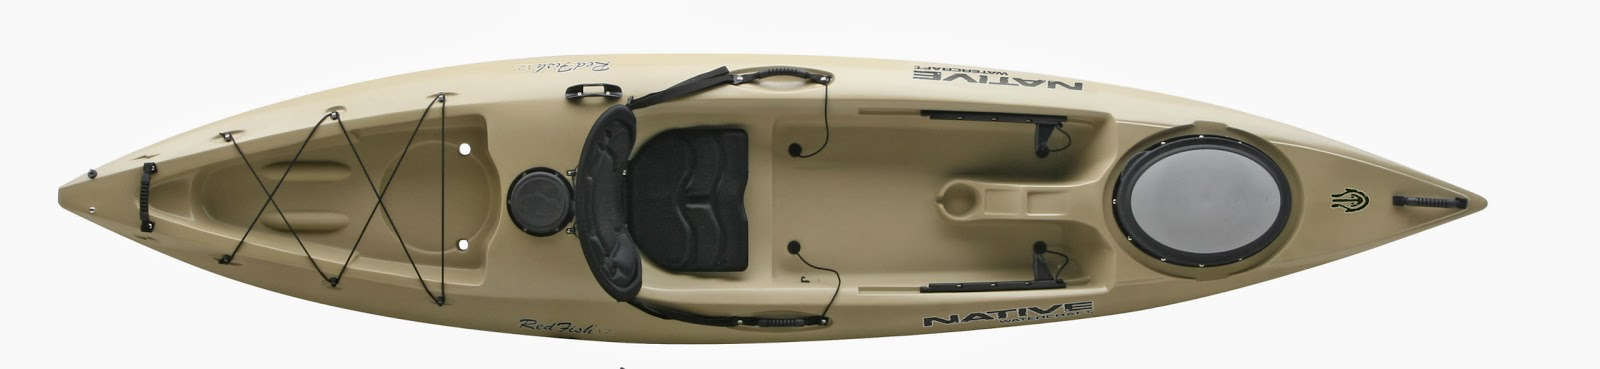 Four kayaks you should try under 600 payne outdoors for Best fishing kayak under 600